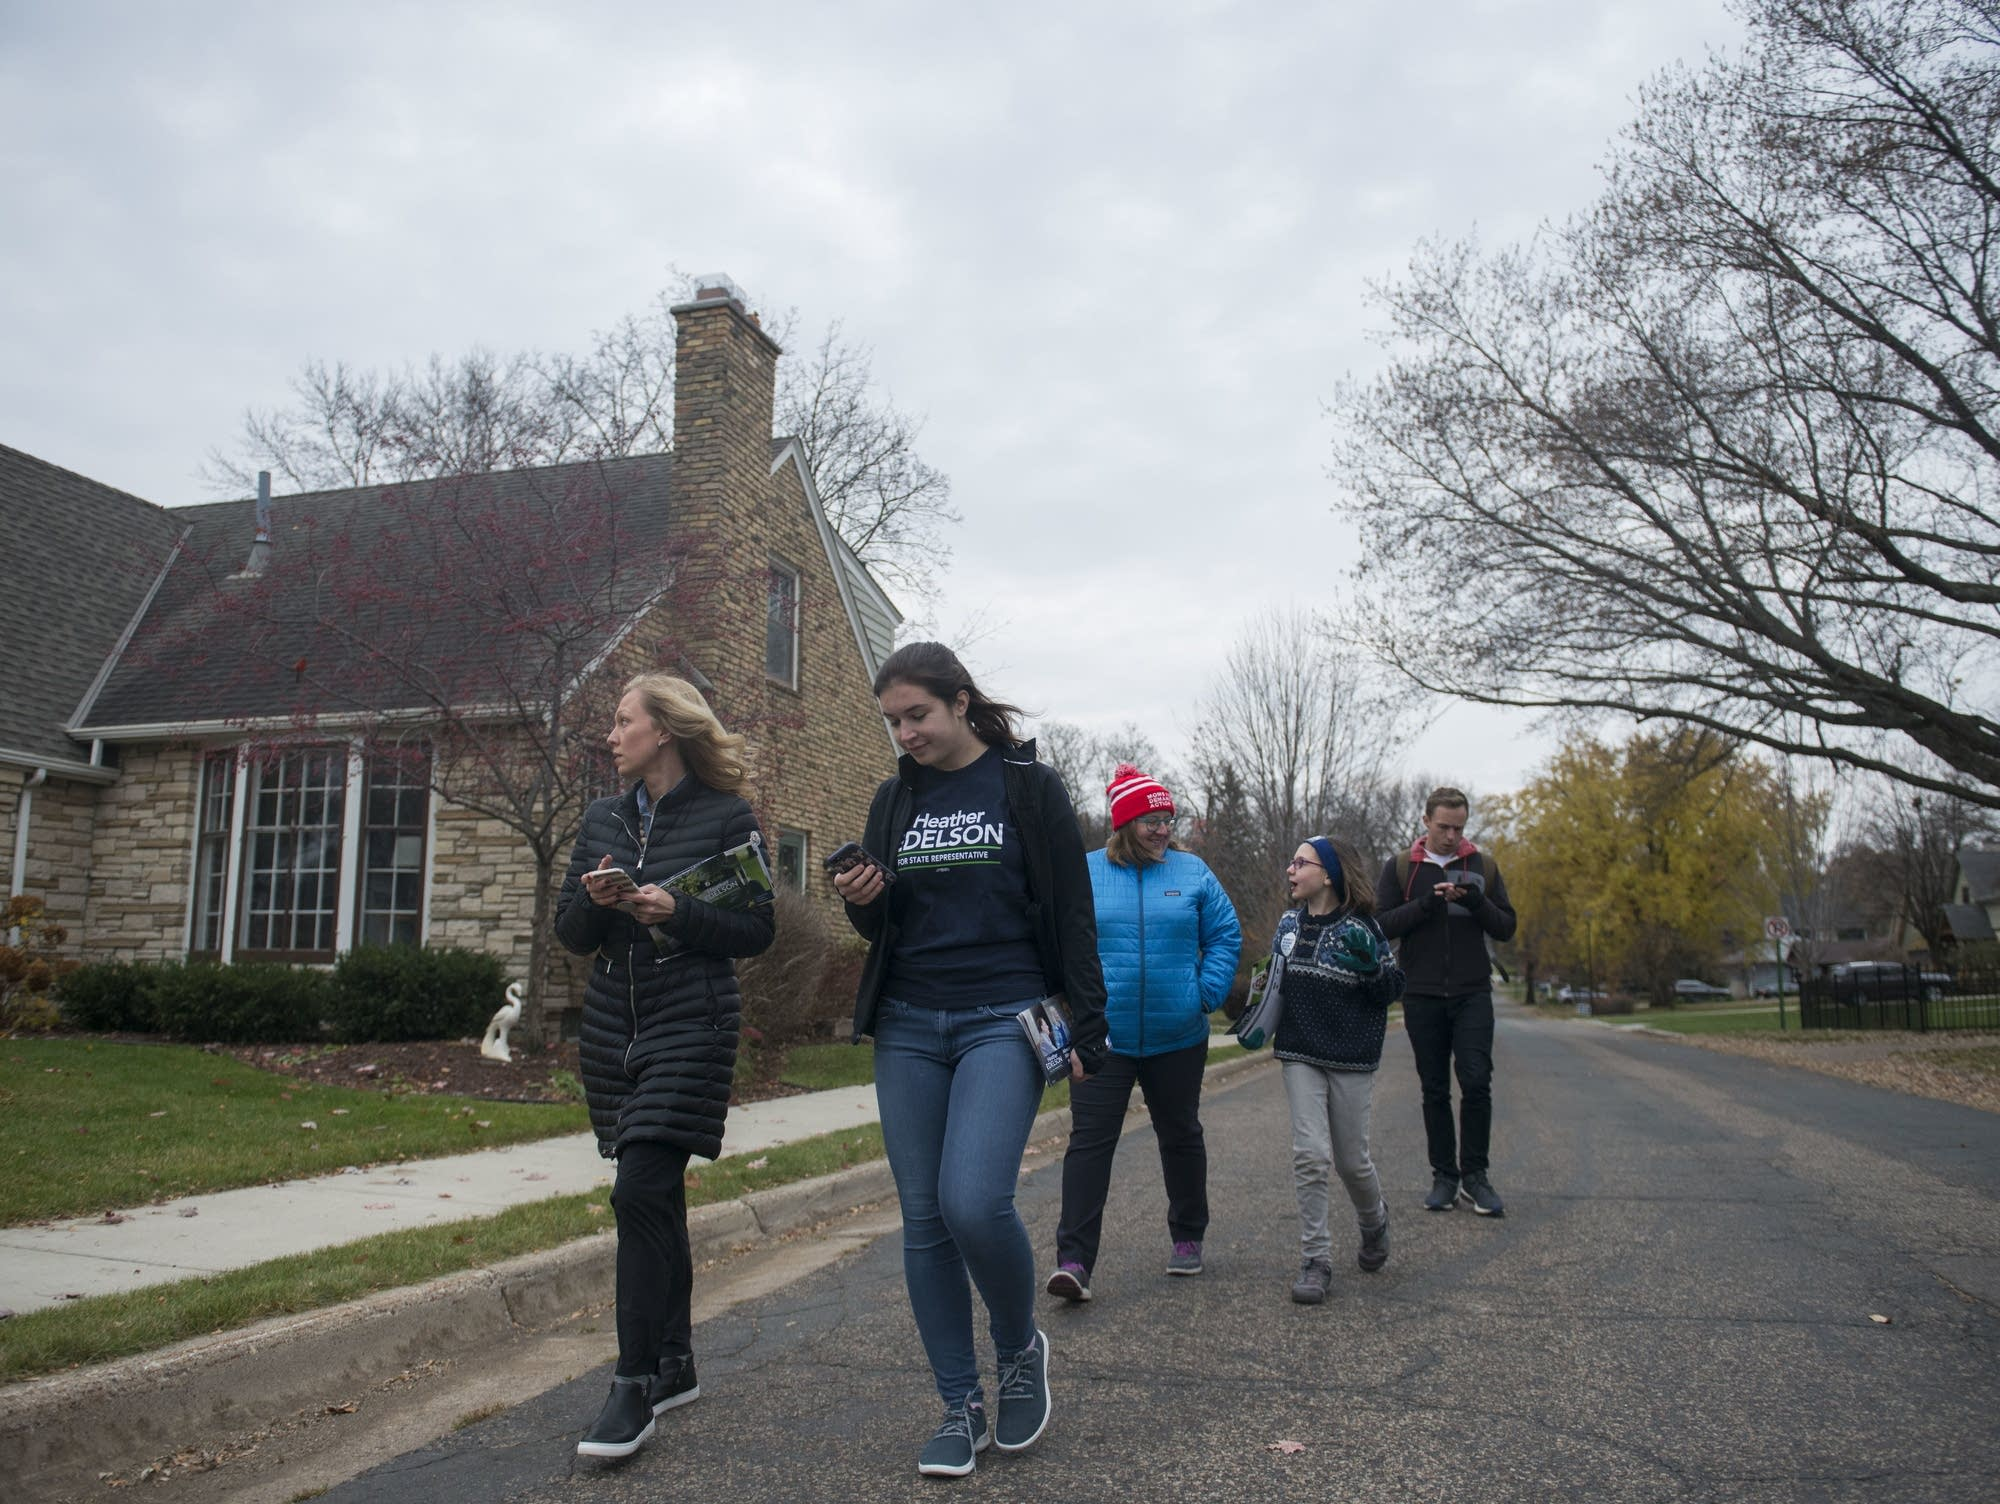 Heather Edelson walks down the street with her staff in Edina